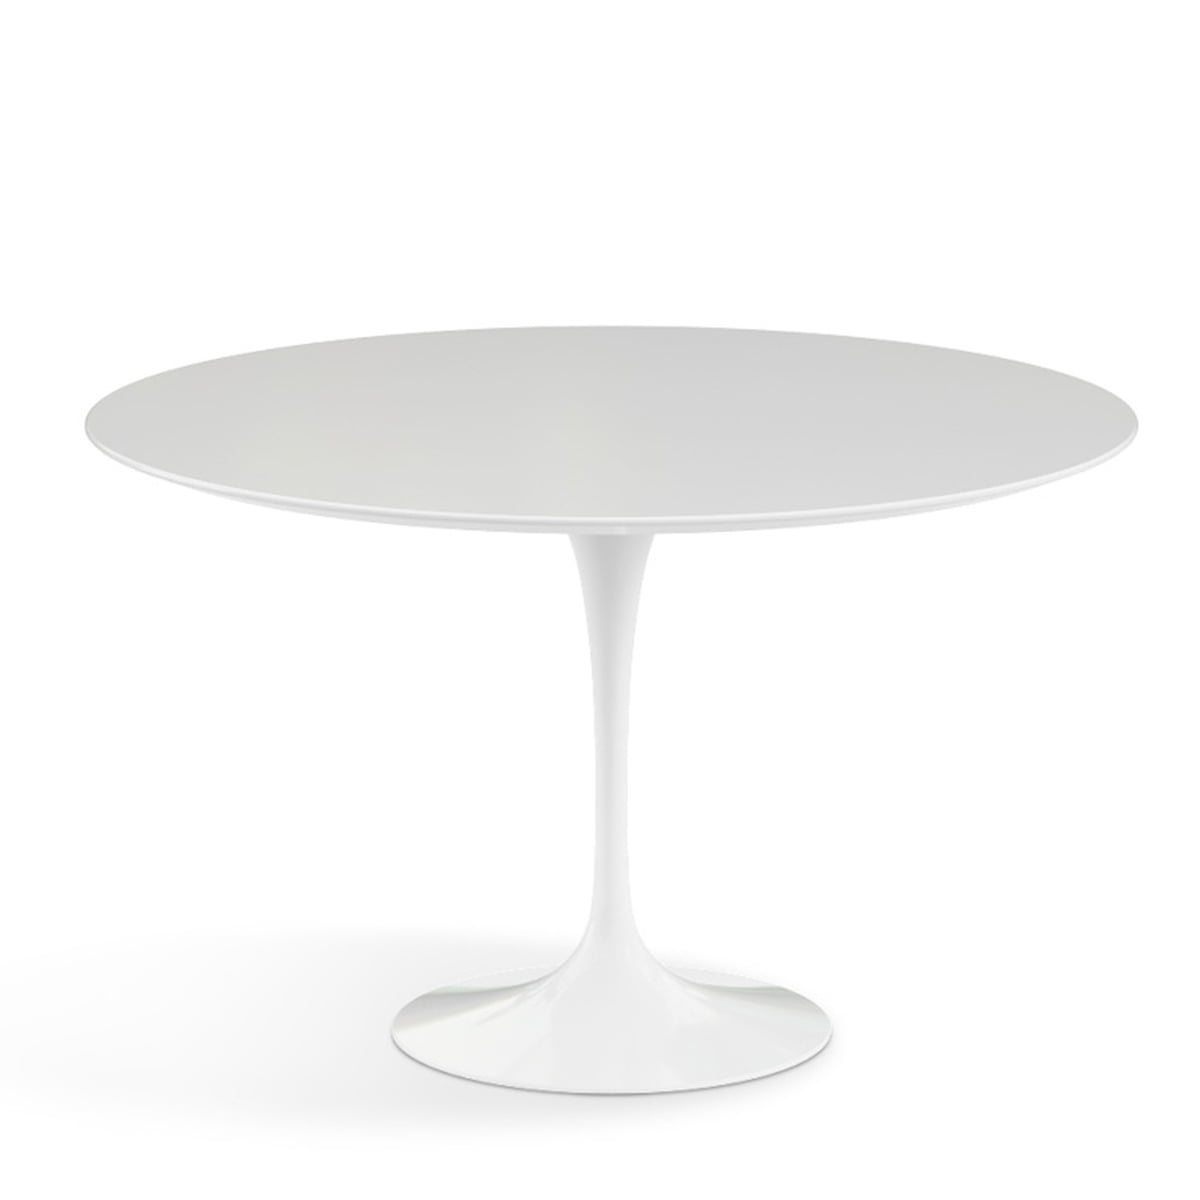 the saarinen tulip dining table from knoll